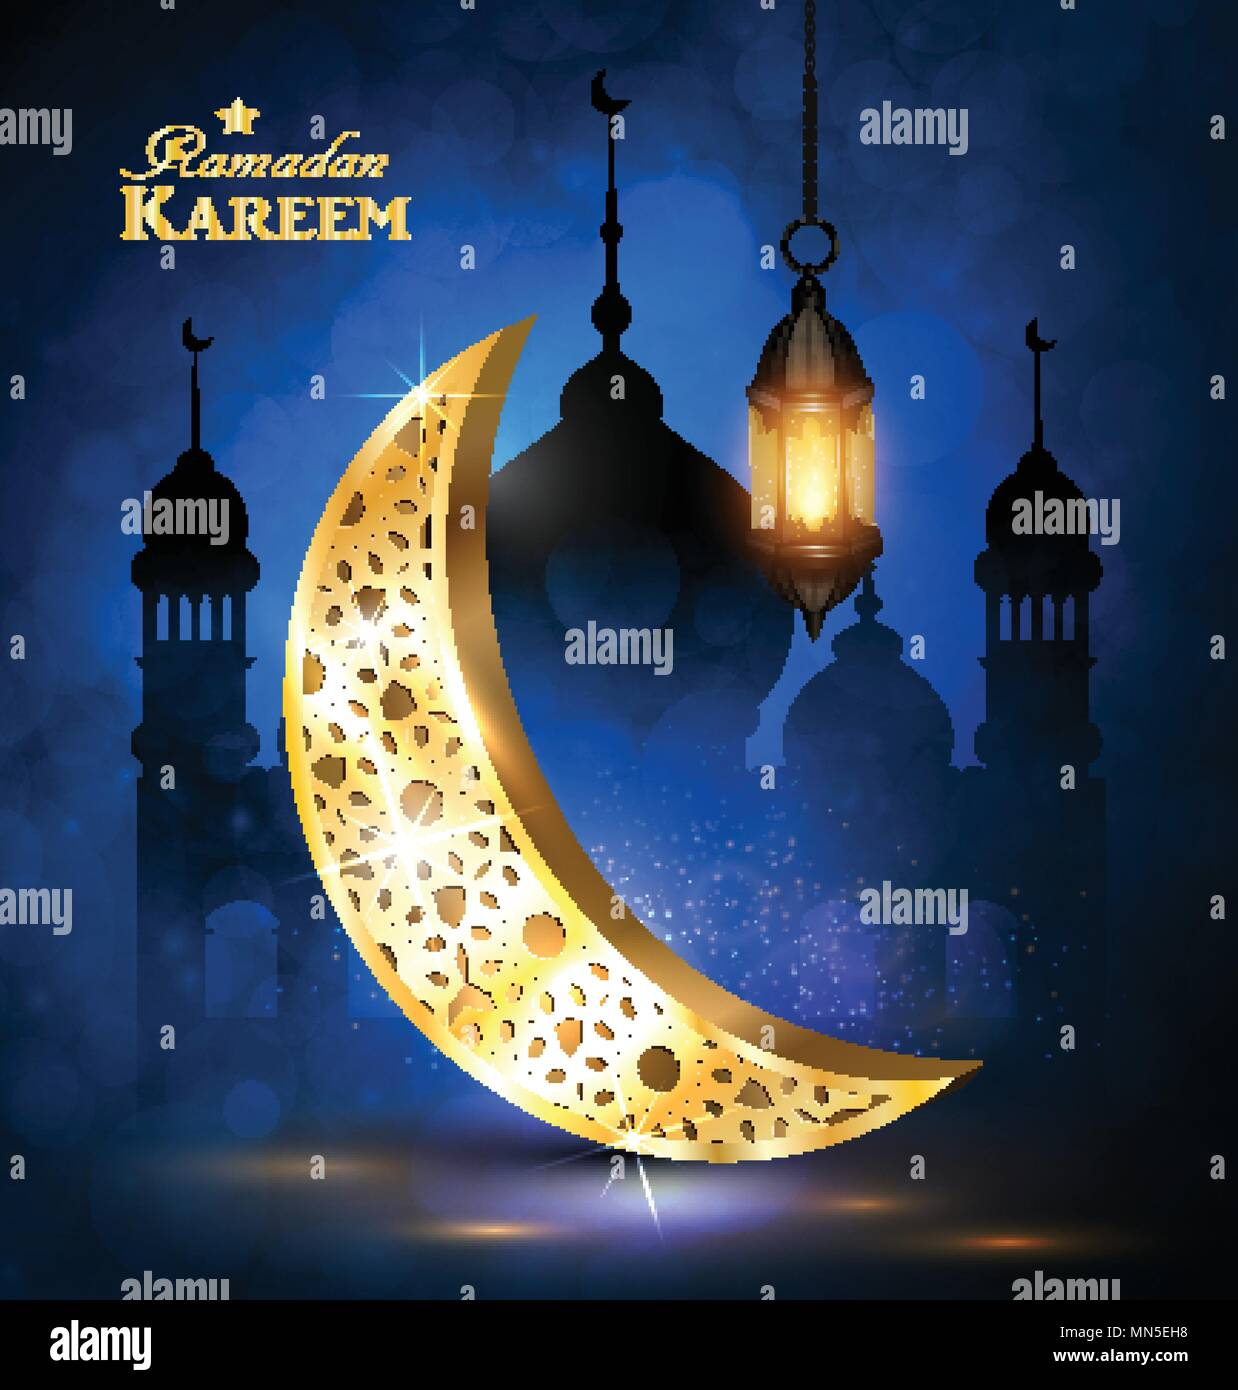 Ramadan Greetings Vector Stock Vector Art Illustration Vector